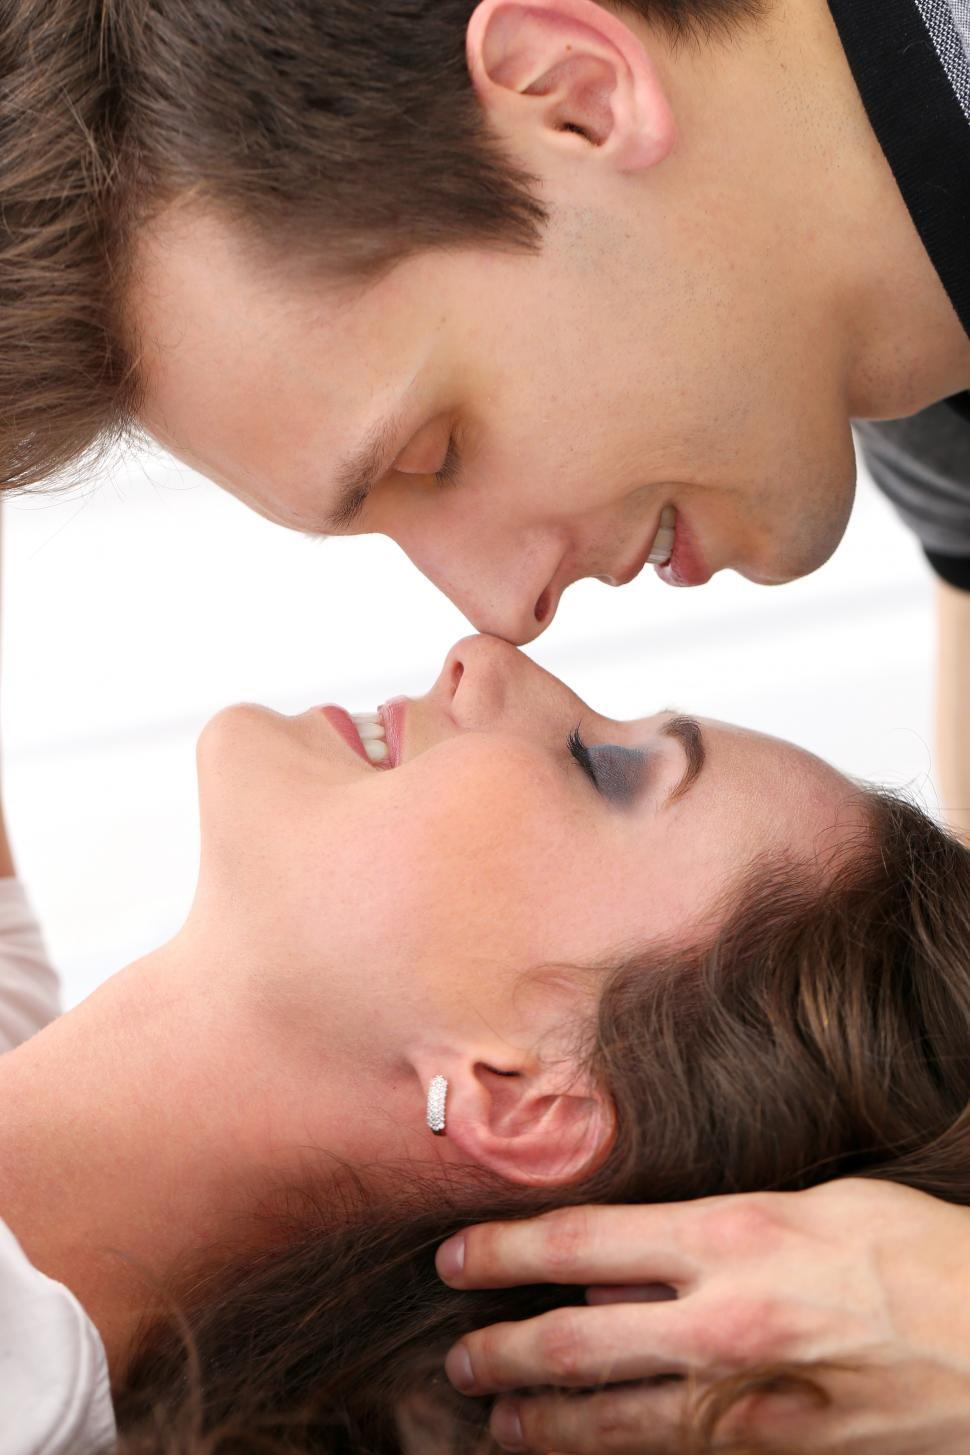 Download Free Stock Photo of Nose to nose happy couple